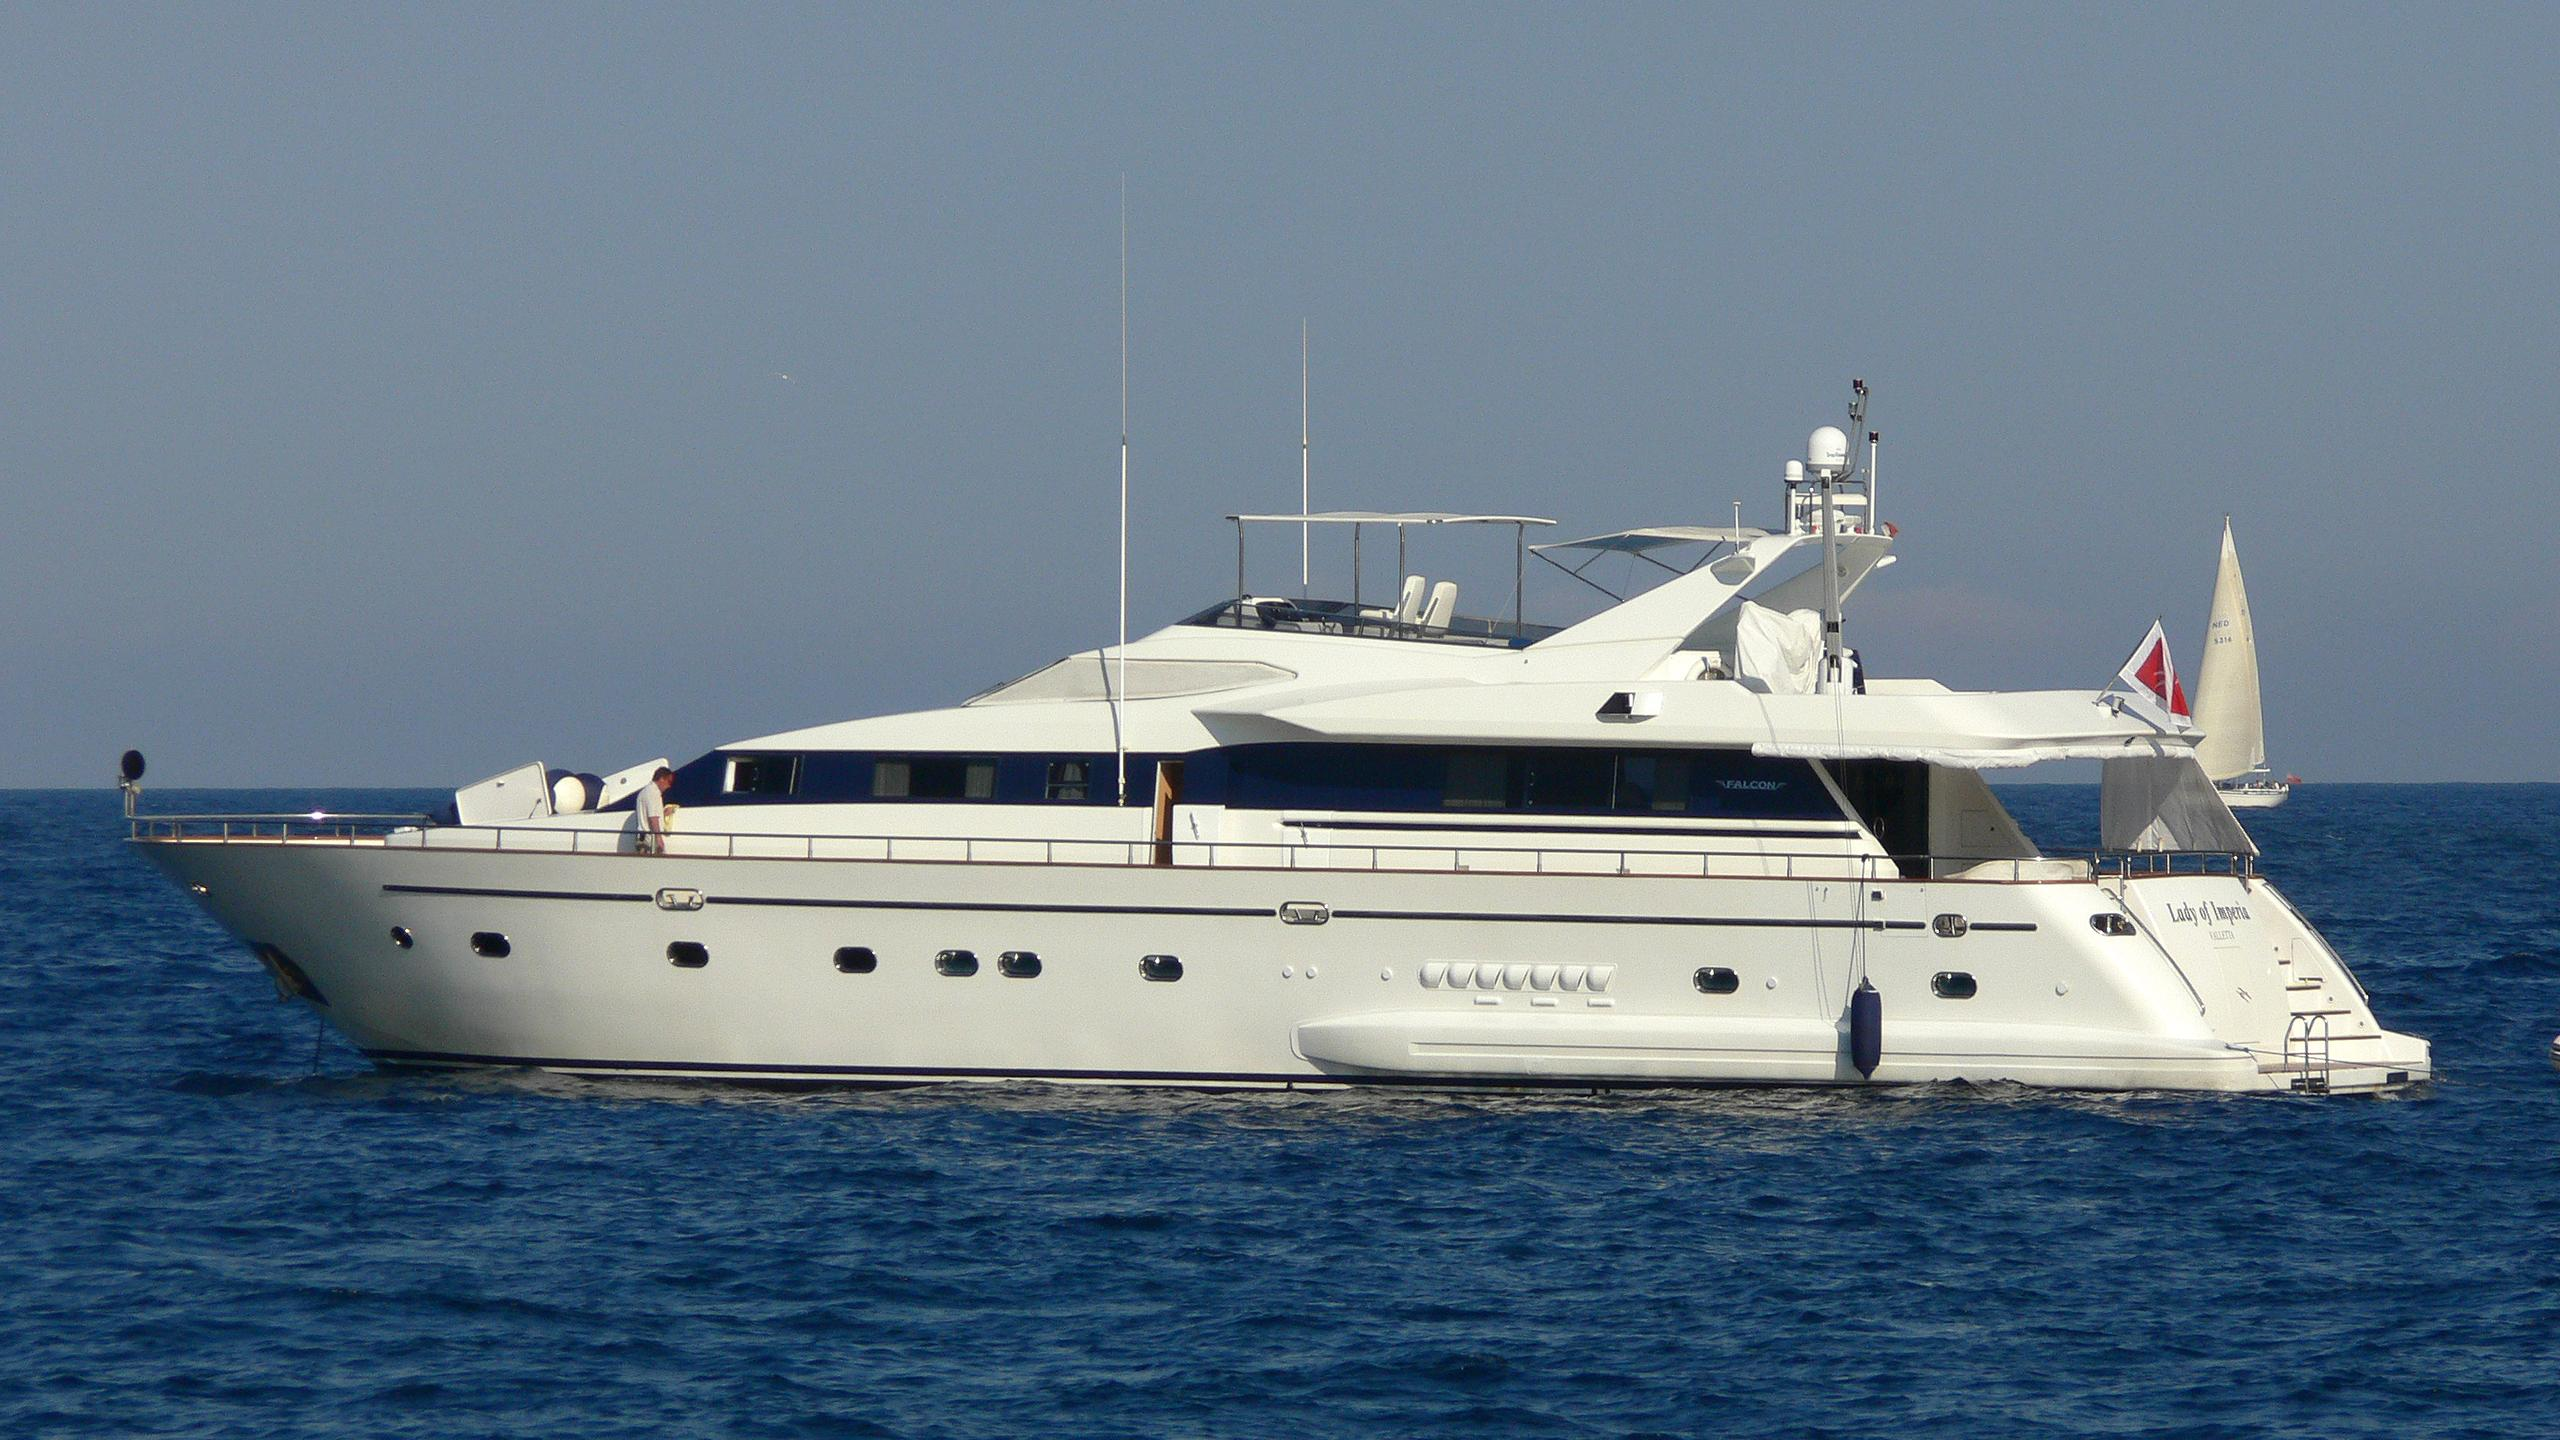 lady-of-imperia-yacht-exterior